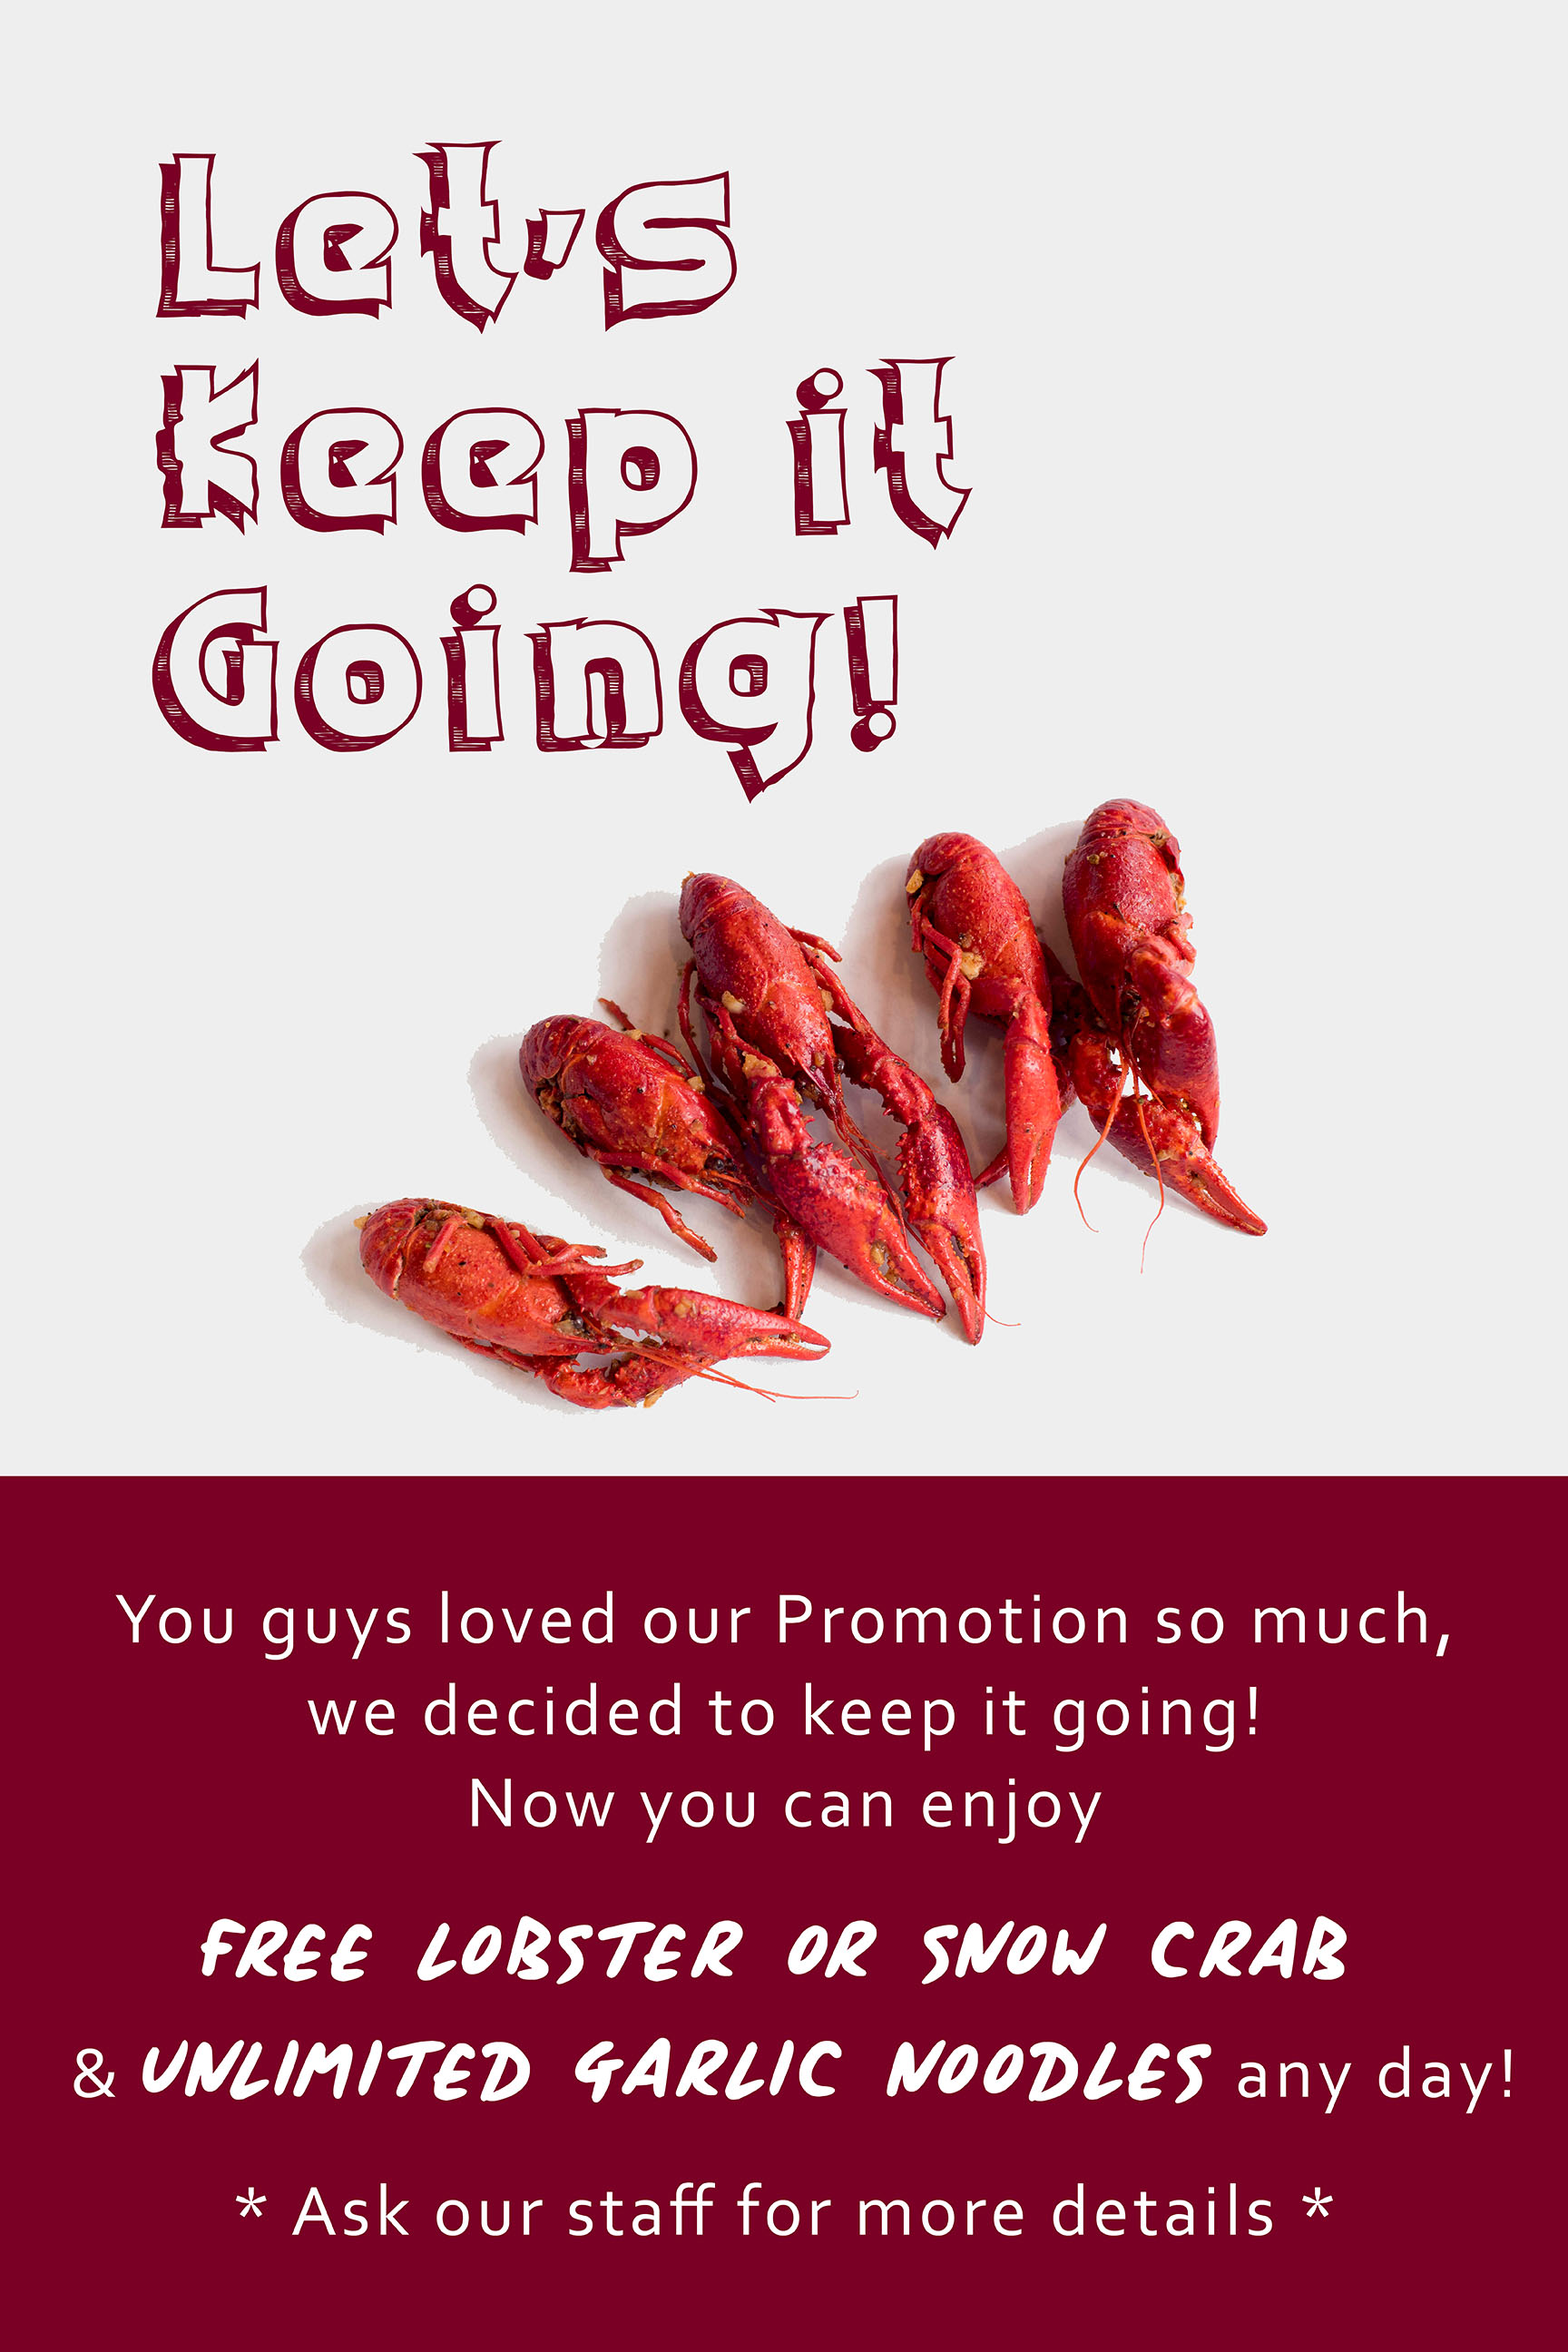 Now you can enjoyFREE LOBSTER, FREE SNOW CRAB, and Unlimited Garlic Noodles any day! - When you order our combos you get one of the followings :Pick2 - Free French Fries or Garlic NoodlesPick3 - Free Crawfish or MusselsPick 4 - Free Lobster or Snow Crab